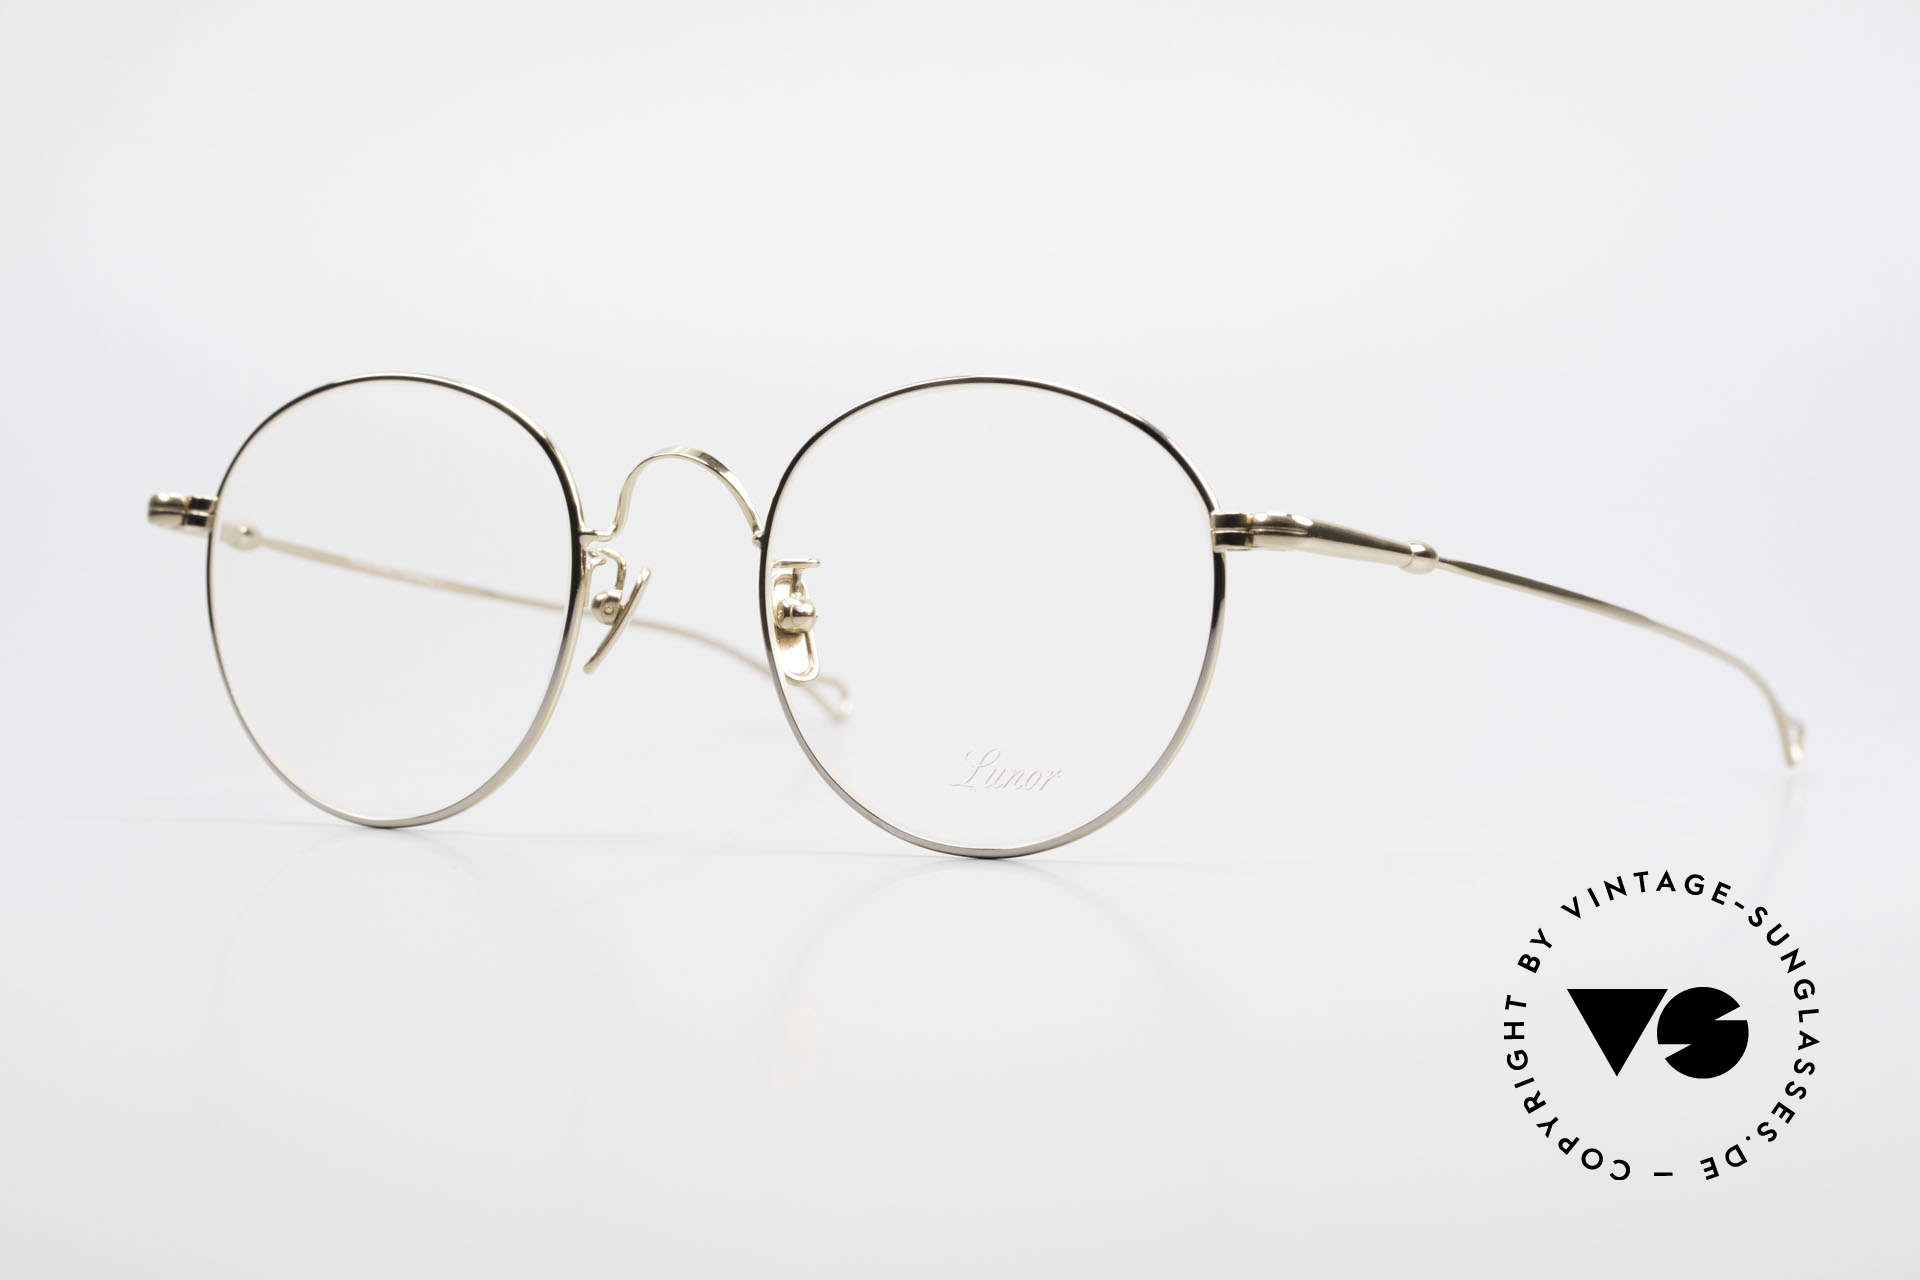 Lunor V 111 Men's Panto Frame Gold Plated, LUNOR: honest craftsmanship with attention to details, Made for Men